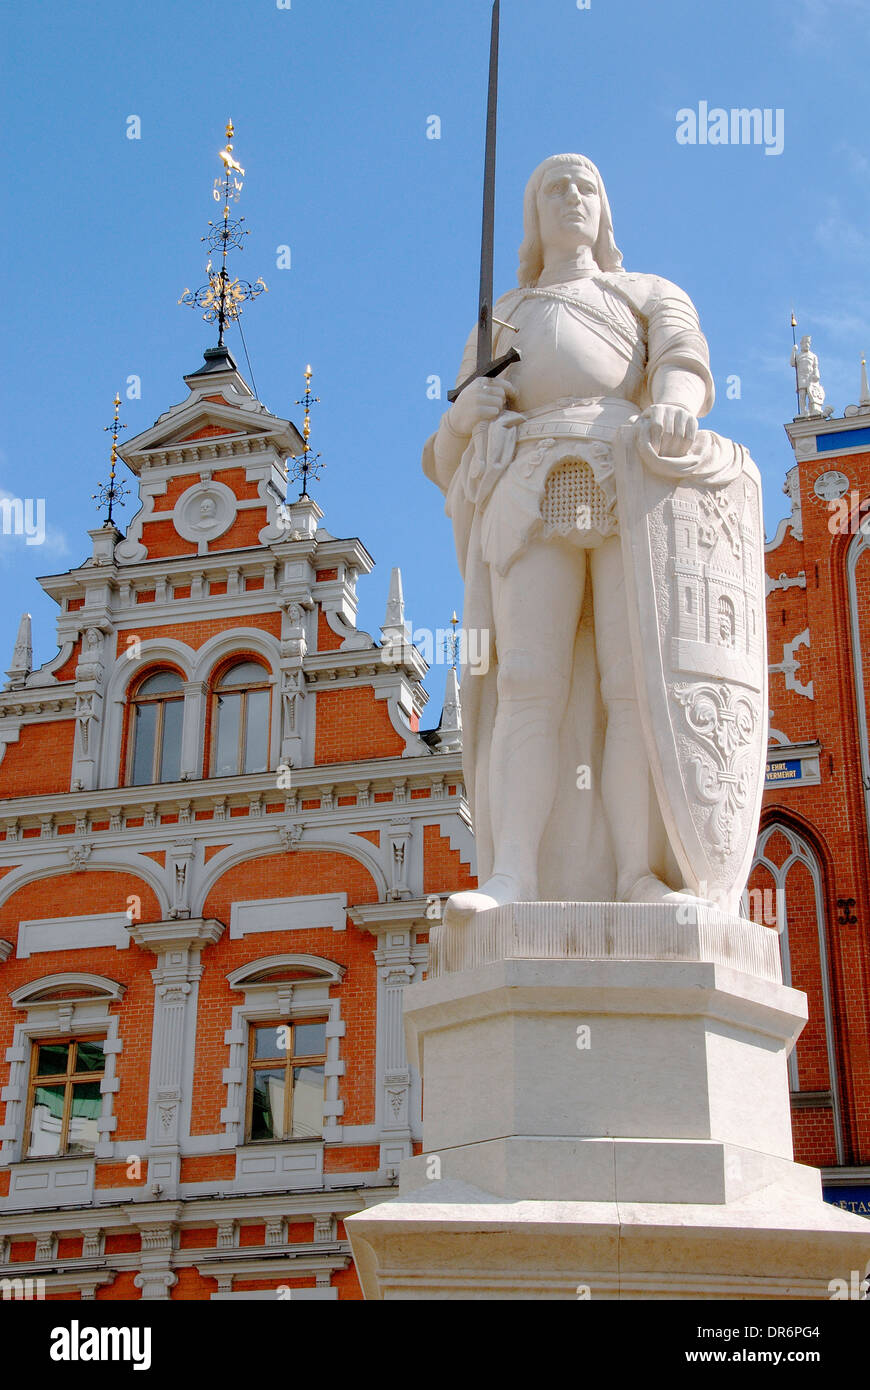 Statue in Riga, Latvia - Stock Image